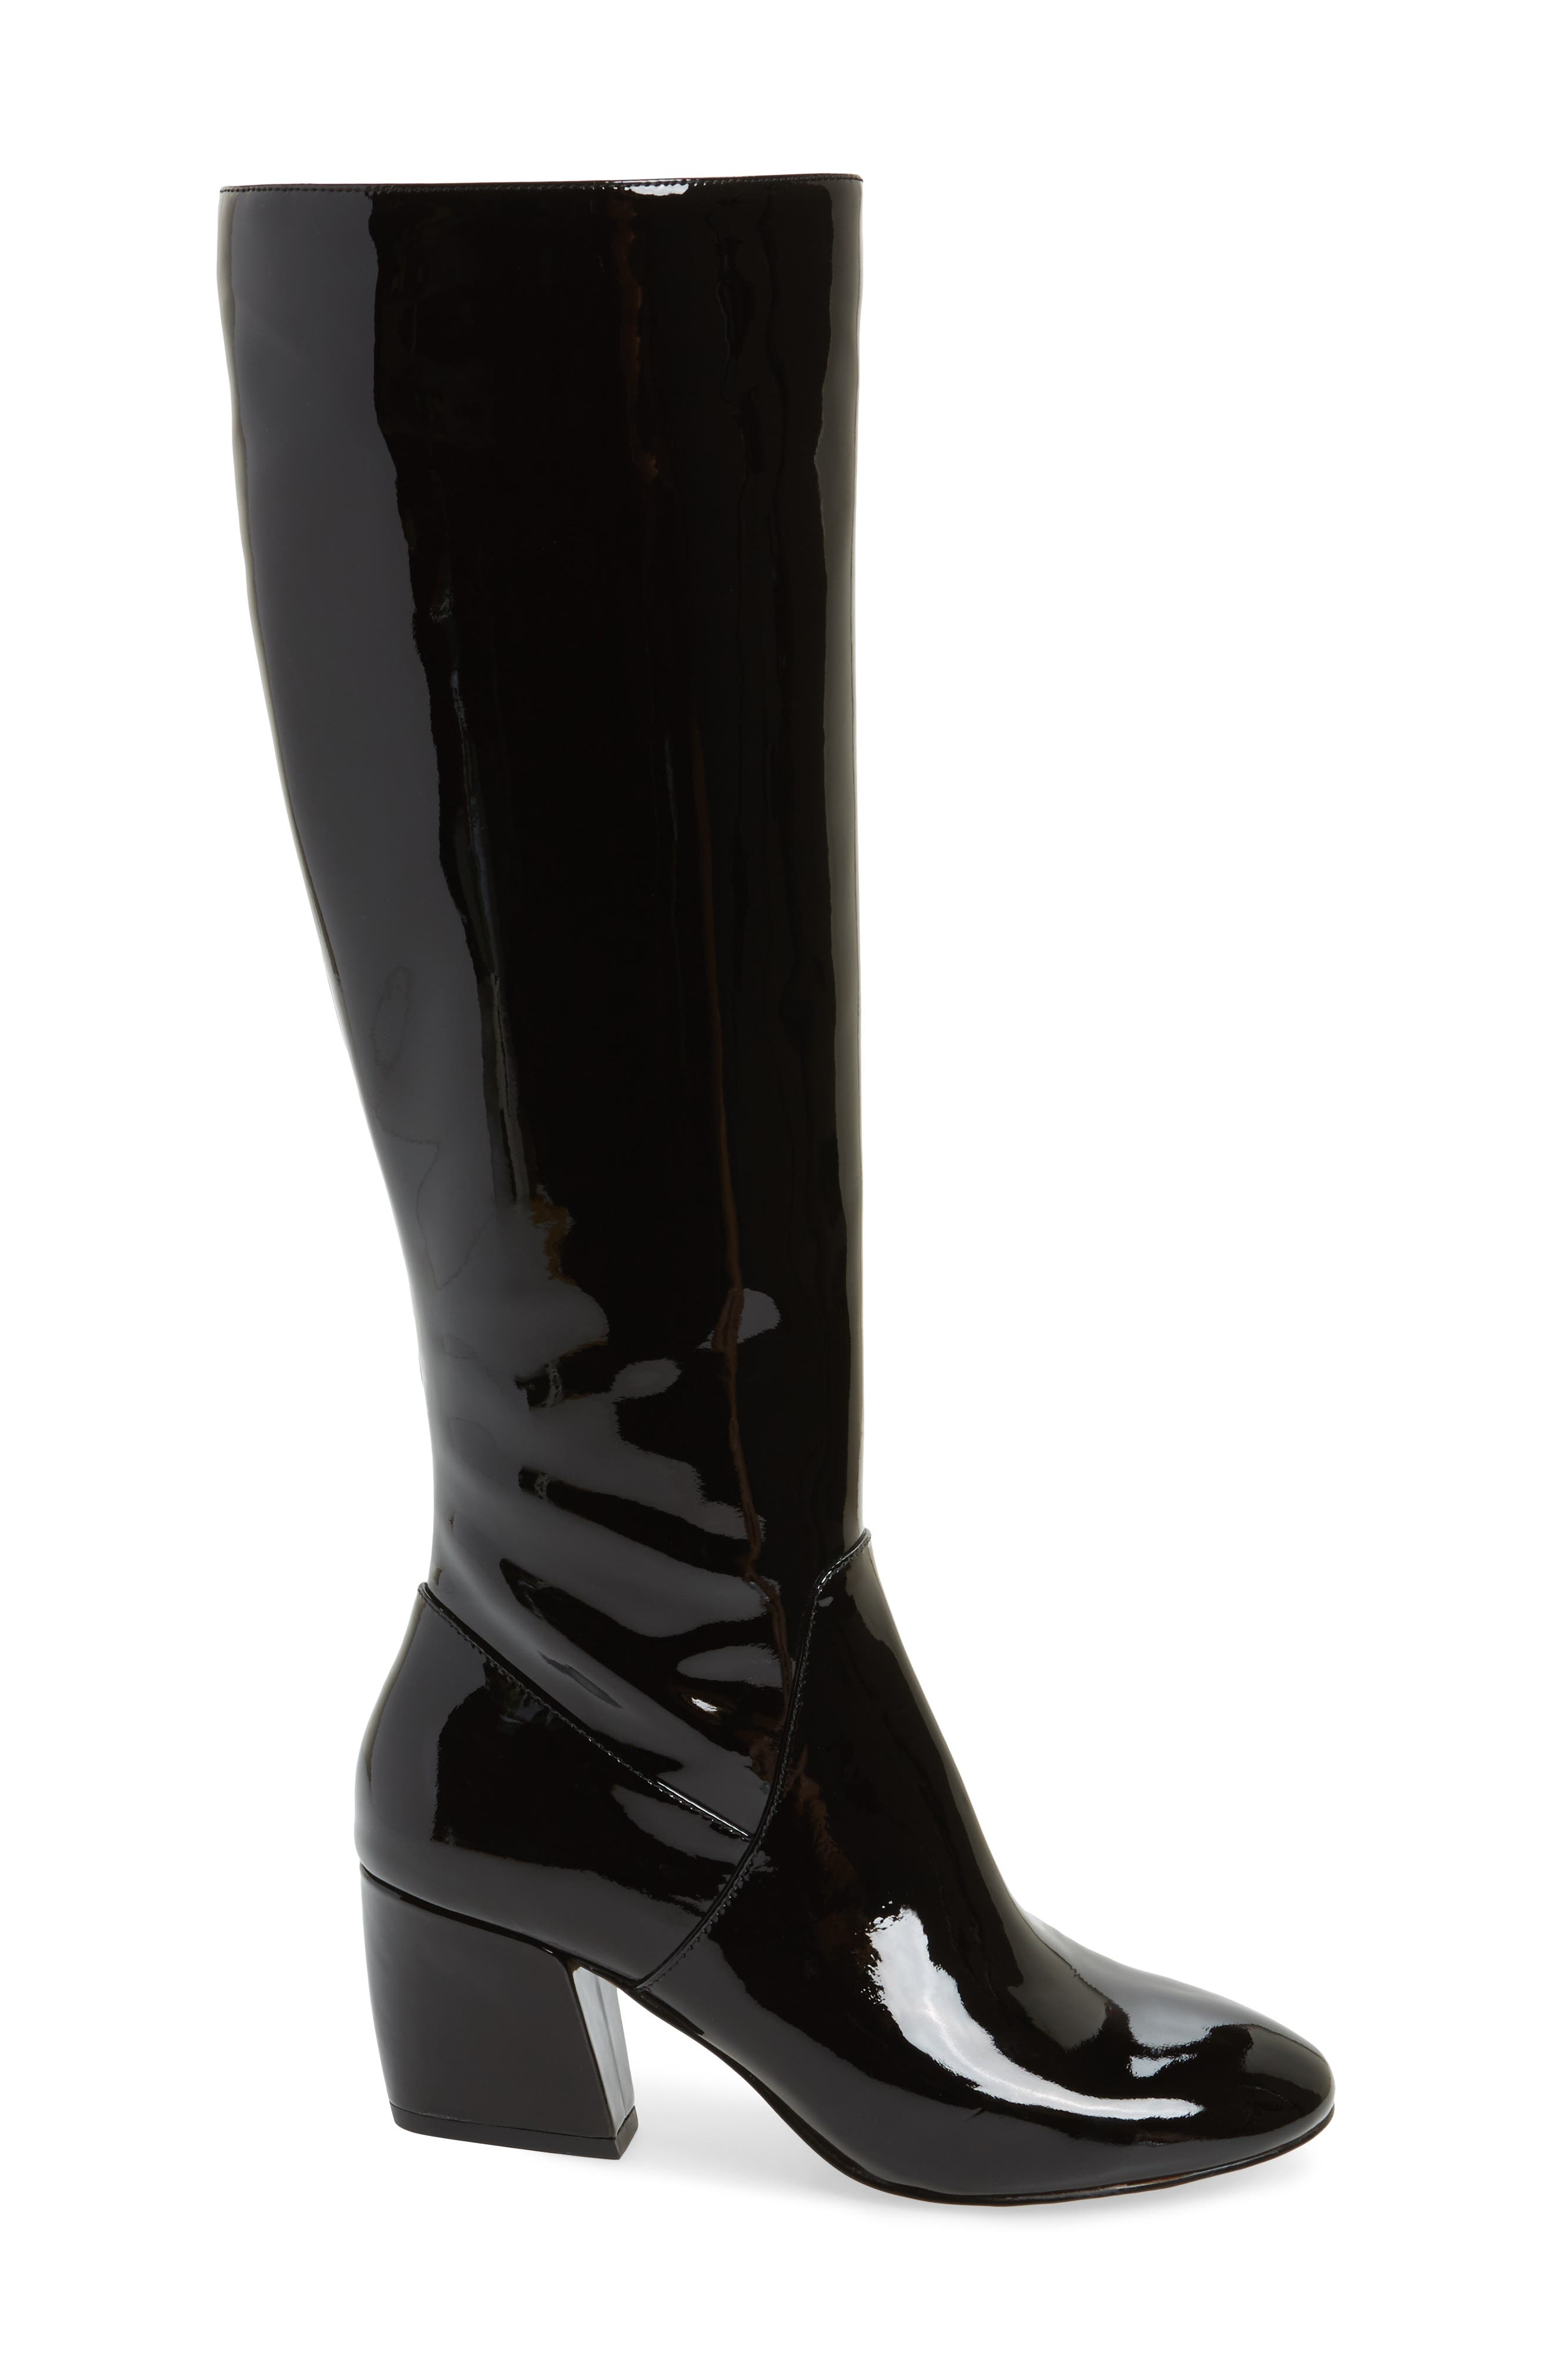 Adelle Knee High Boot,                             Alternate thumbnail 2, color,                             Black Patent Leather